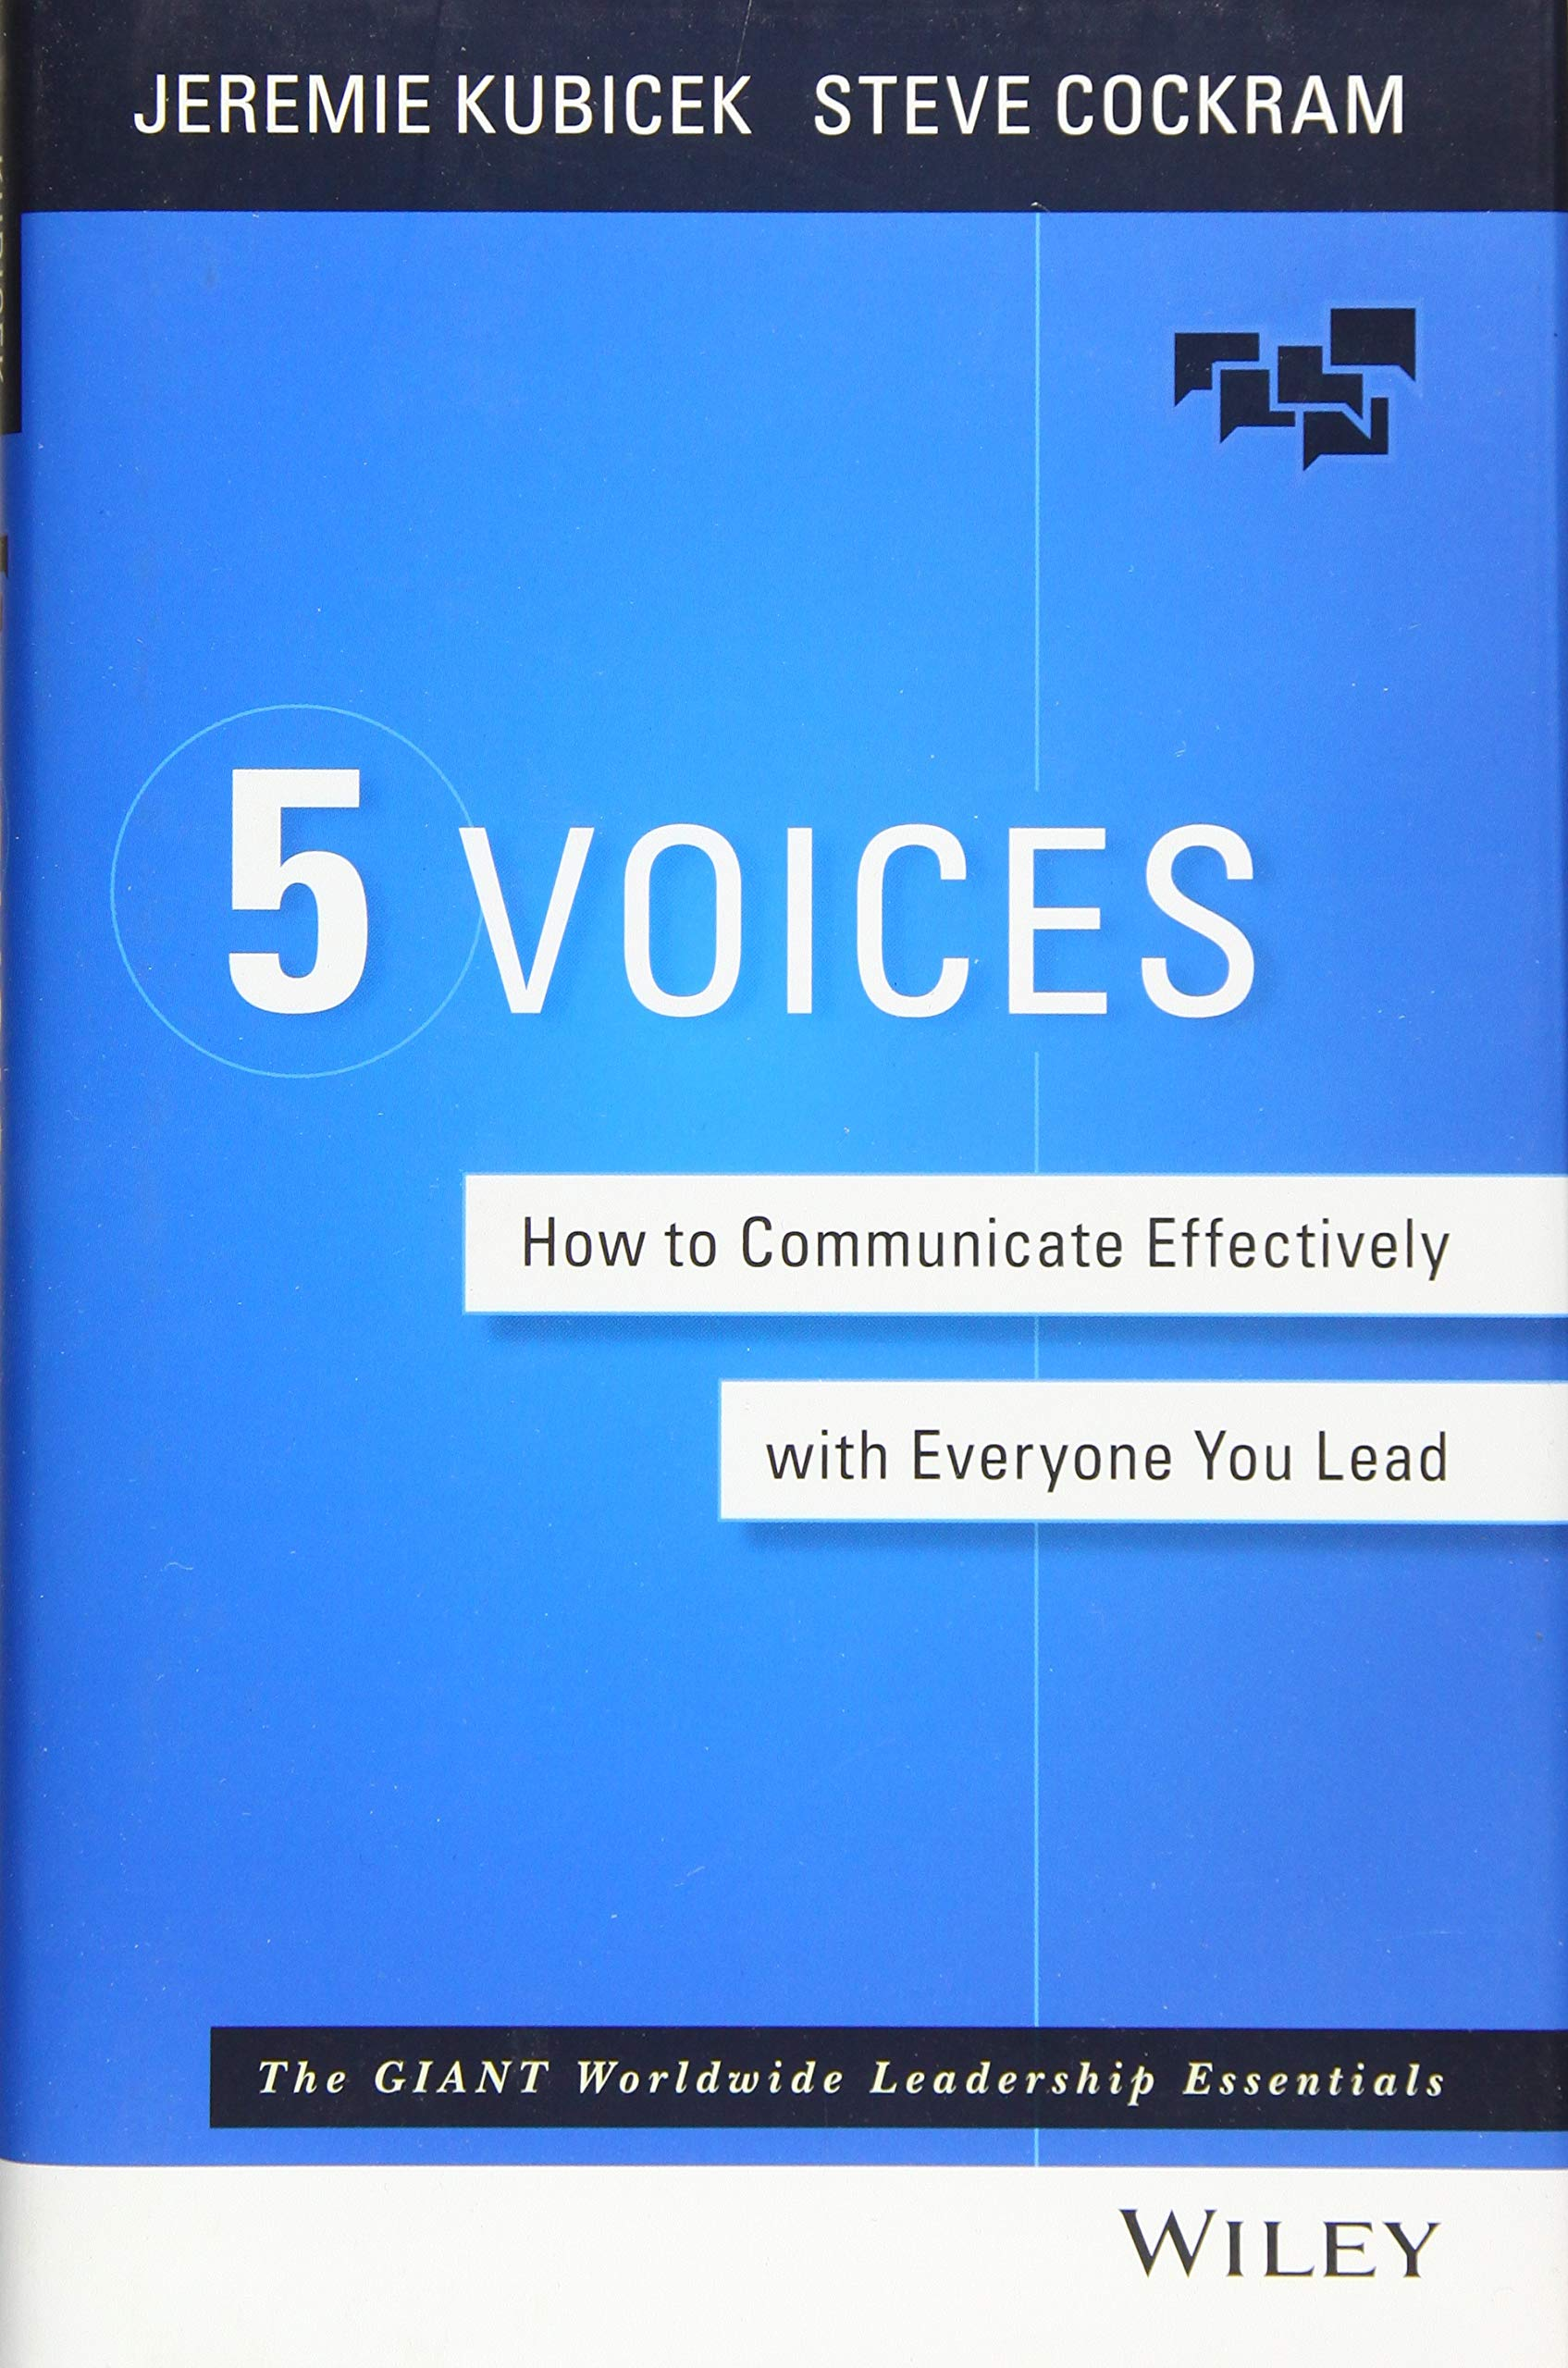 5 Voices: How to Communicate Effectively with